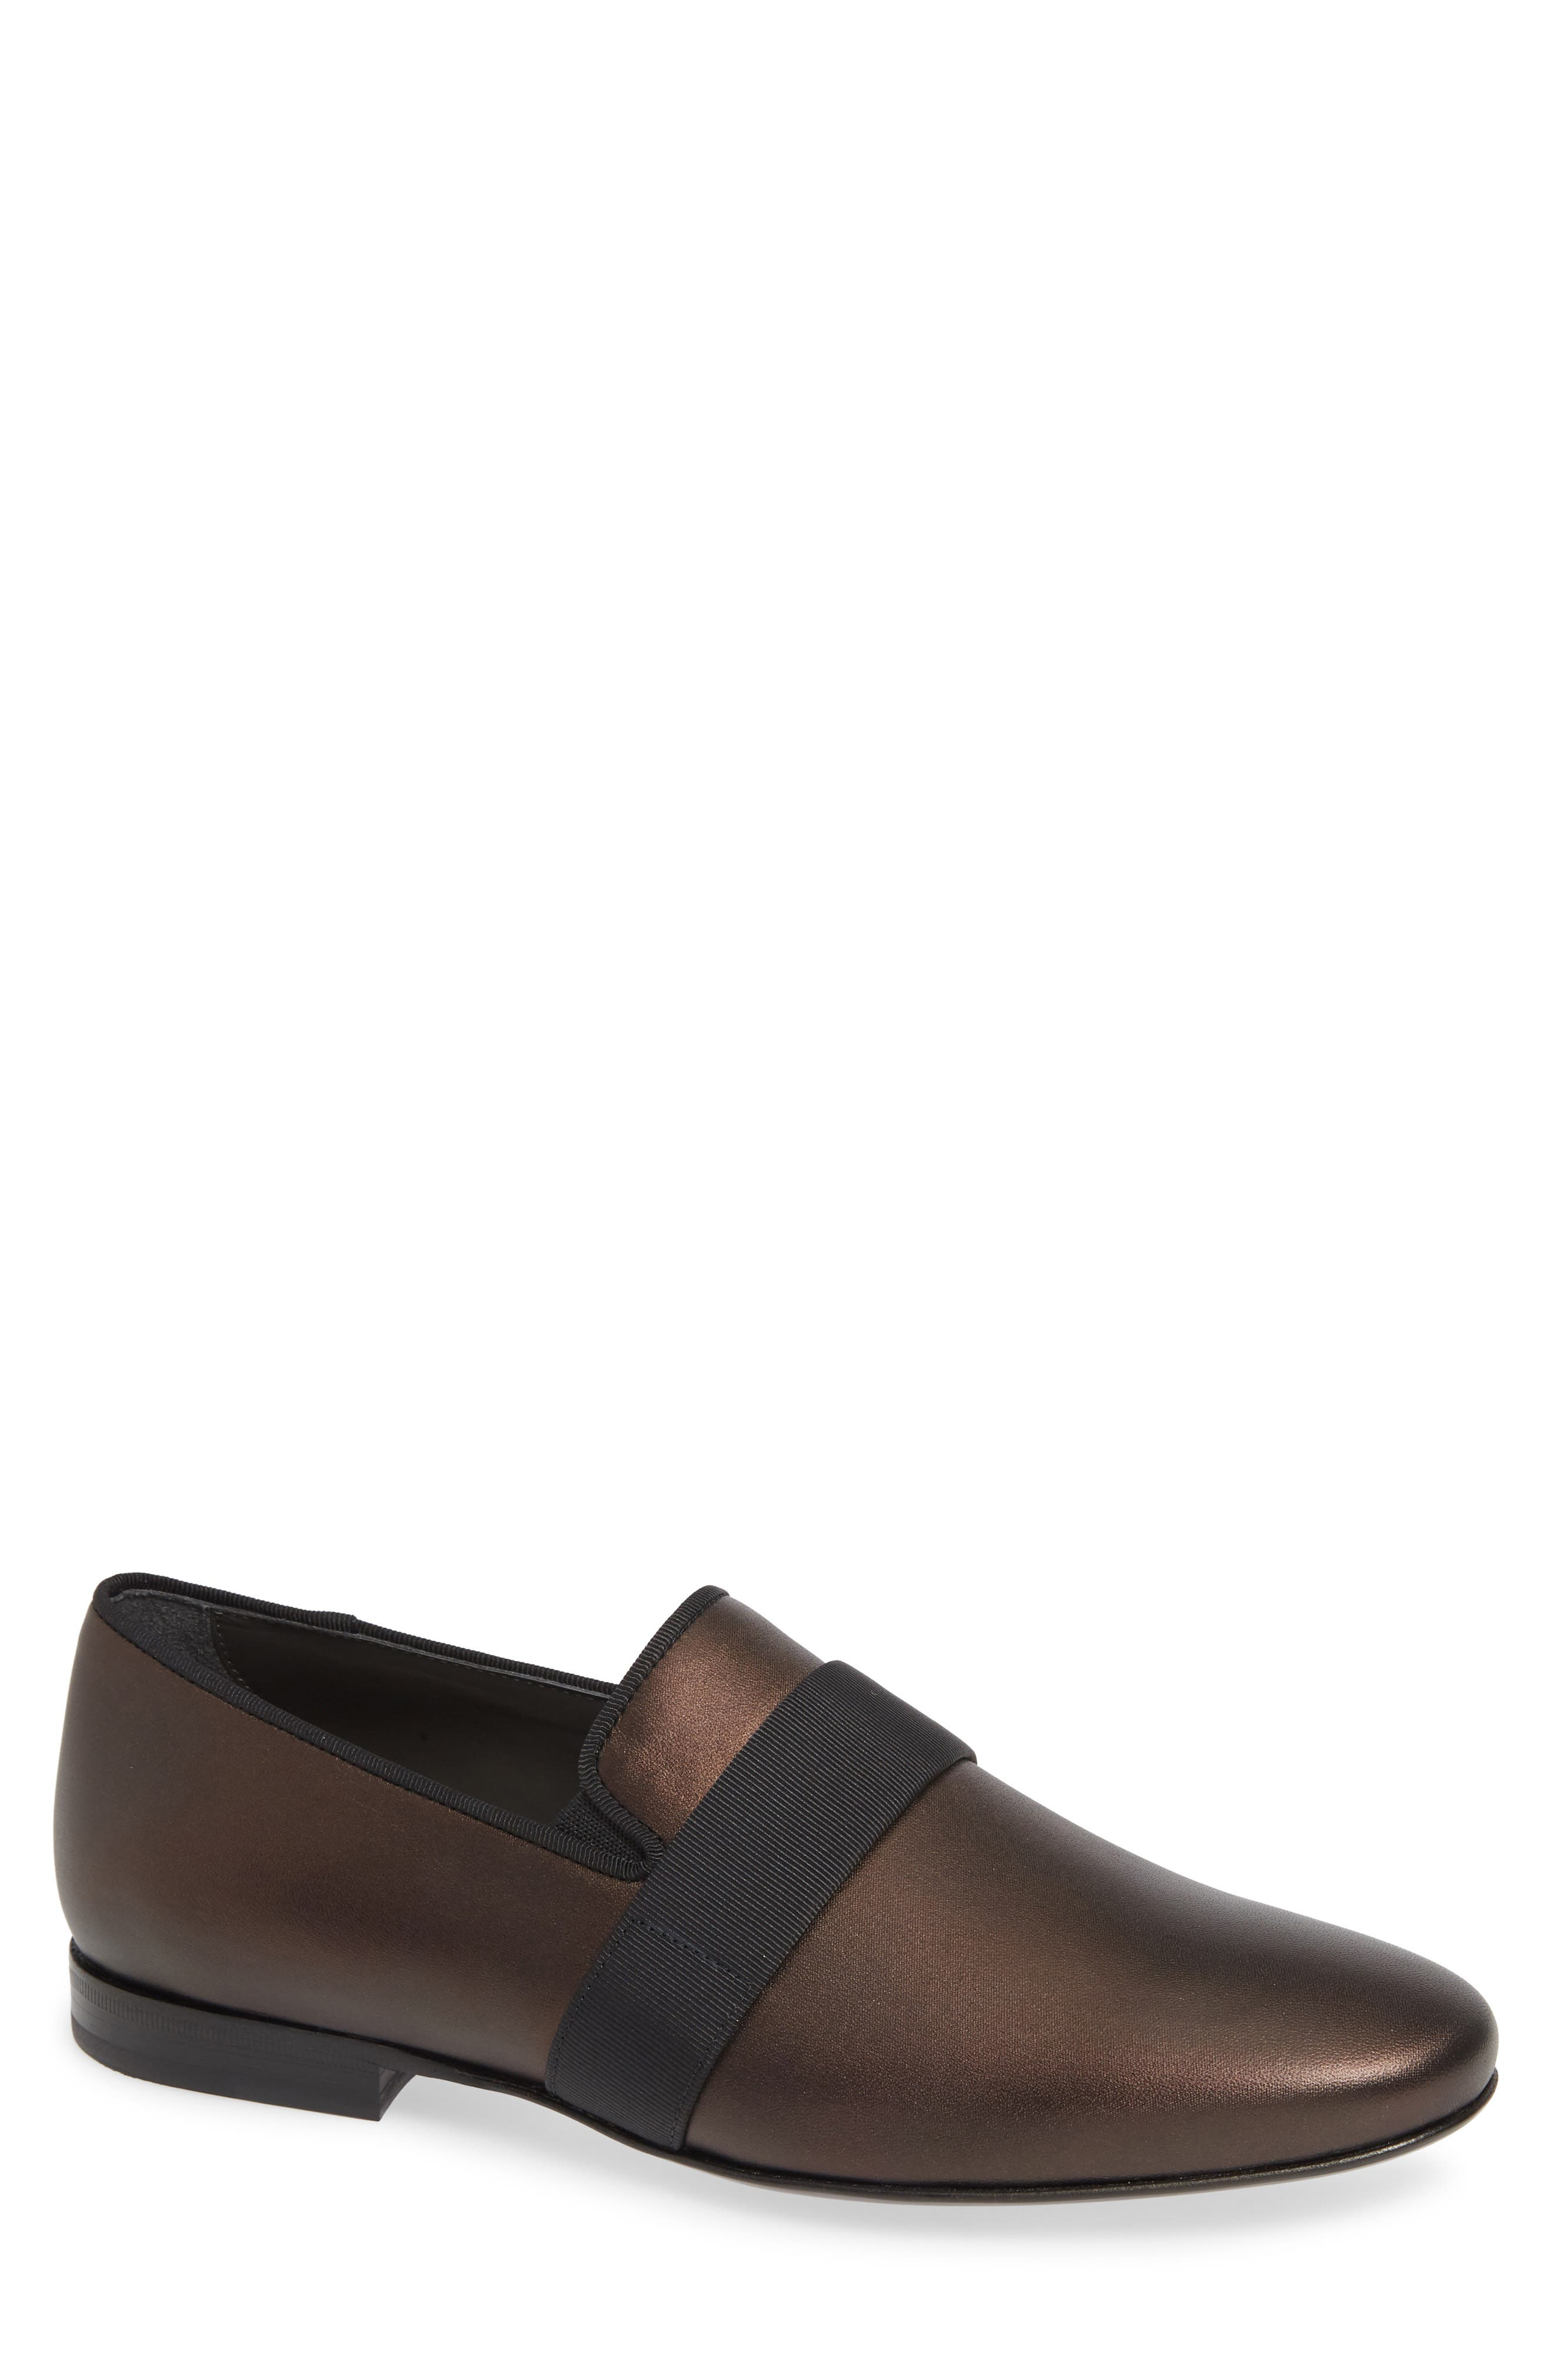 Satin Leather Evening Slippers in Brown